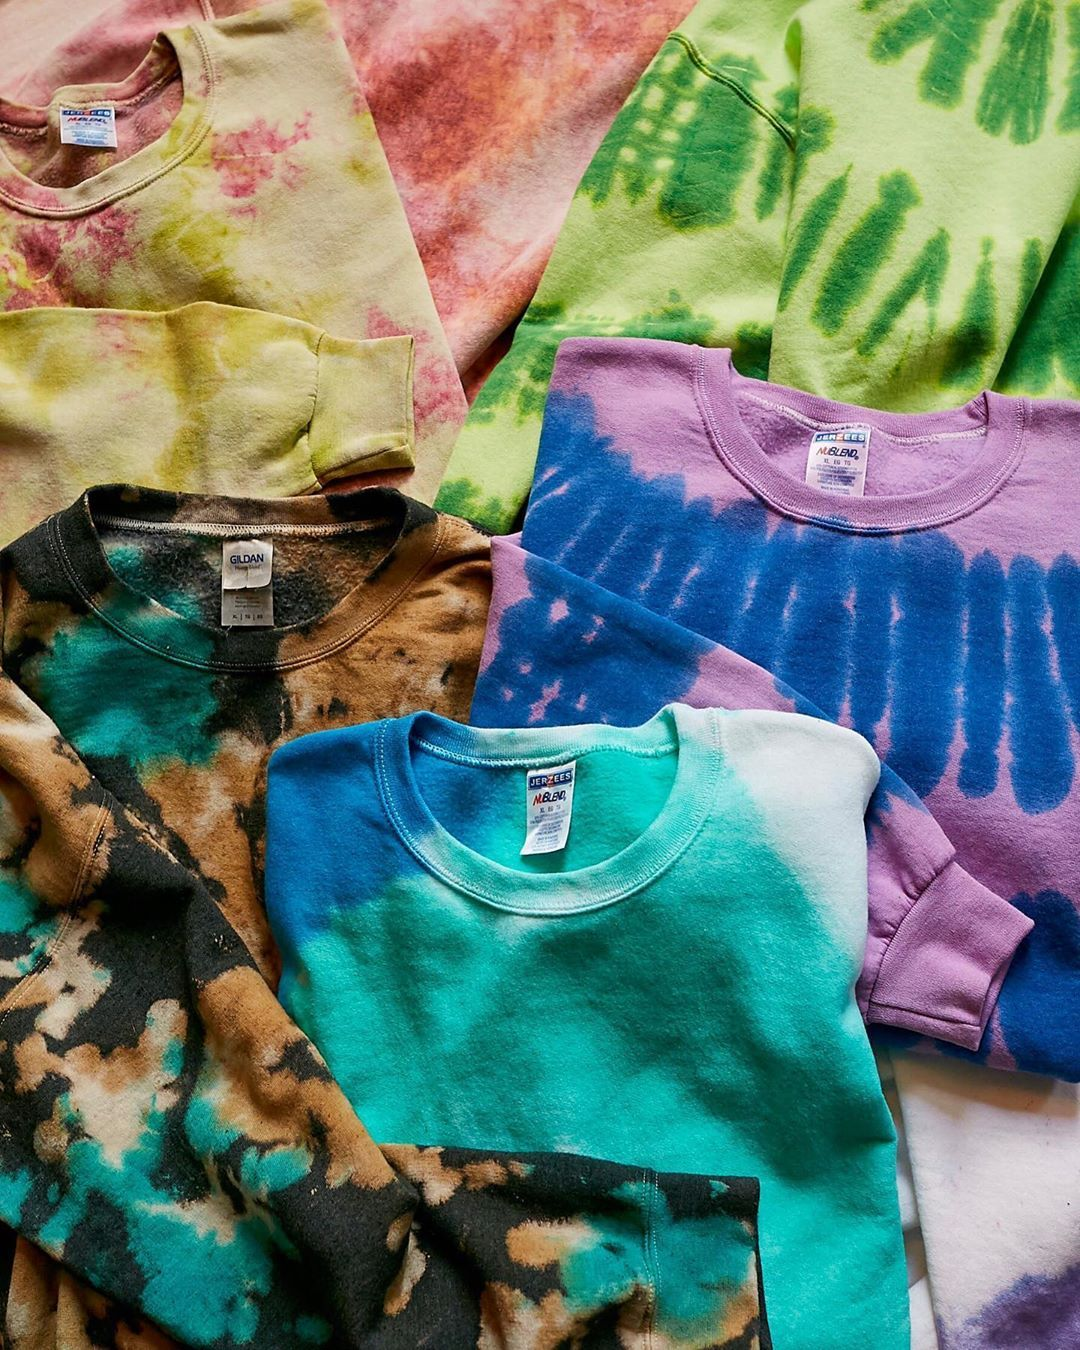 Urban Outfitters On Instagram You Know That One Sweatshirt You Won T Let Anyone Else Borrow The One You Bring Everywh Sweatshirts Tie Dye Tie Dye Sweatshirt [ 1350 x 1080 Pixel ]